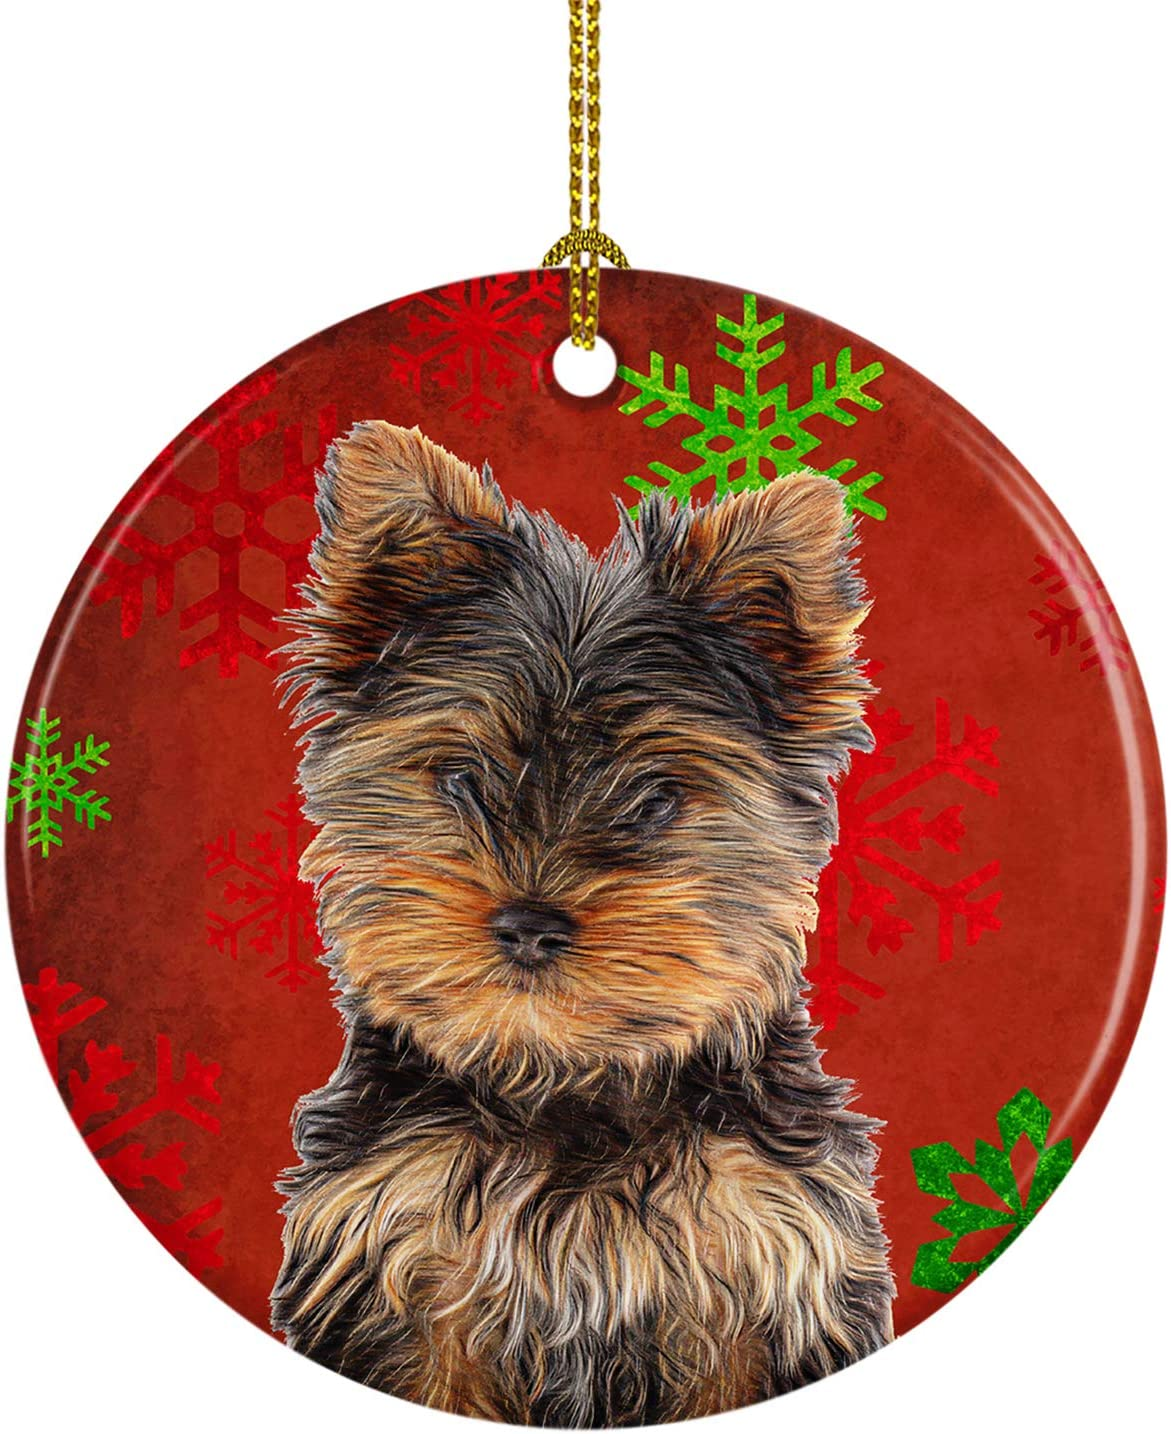 Caroline's Treasures KJ1188CO1 Red Snowflakes Holiday Christmas Yorkie Puppy/Yorkshire Terrier Ceramic Ornament, 3 in, Multicolor